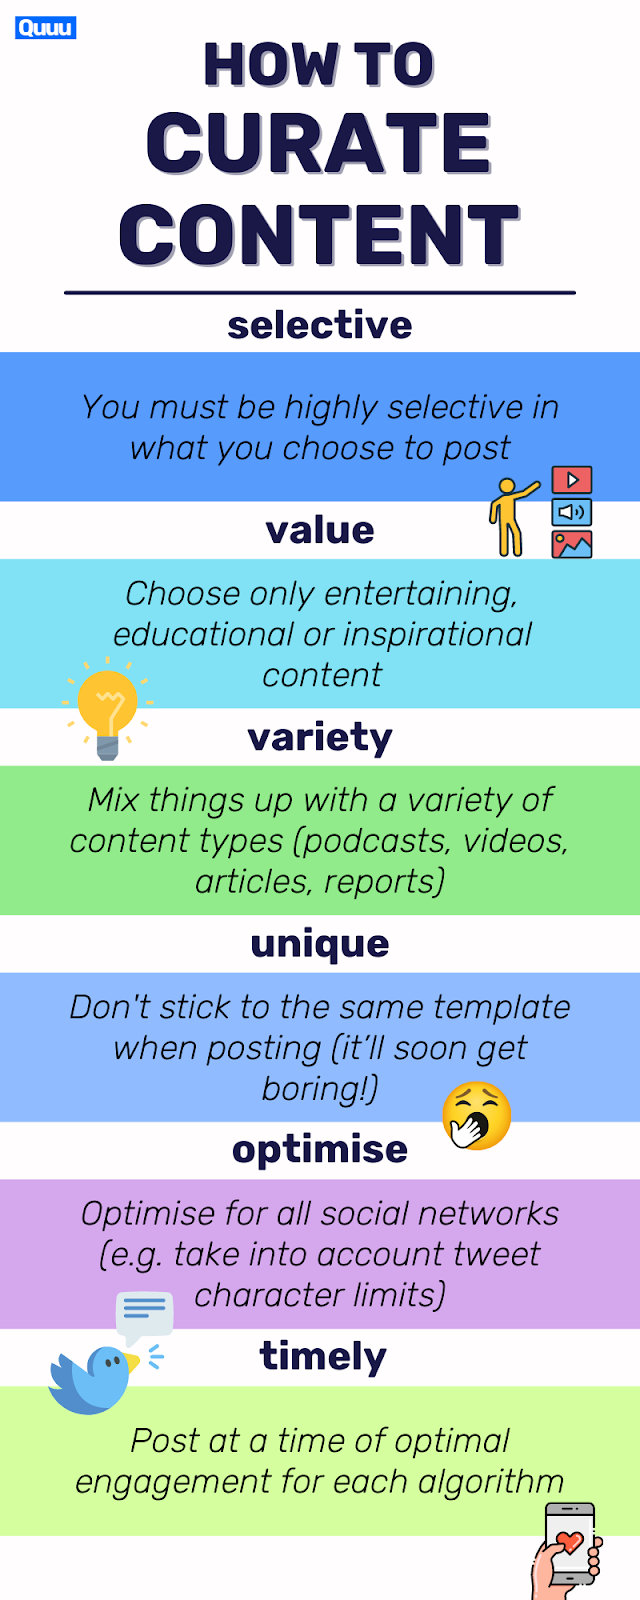 How to curate content with 6 tips.